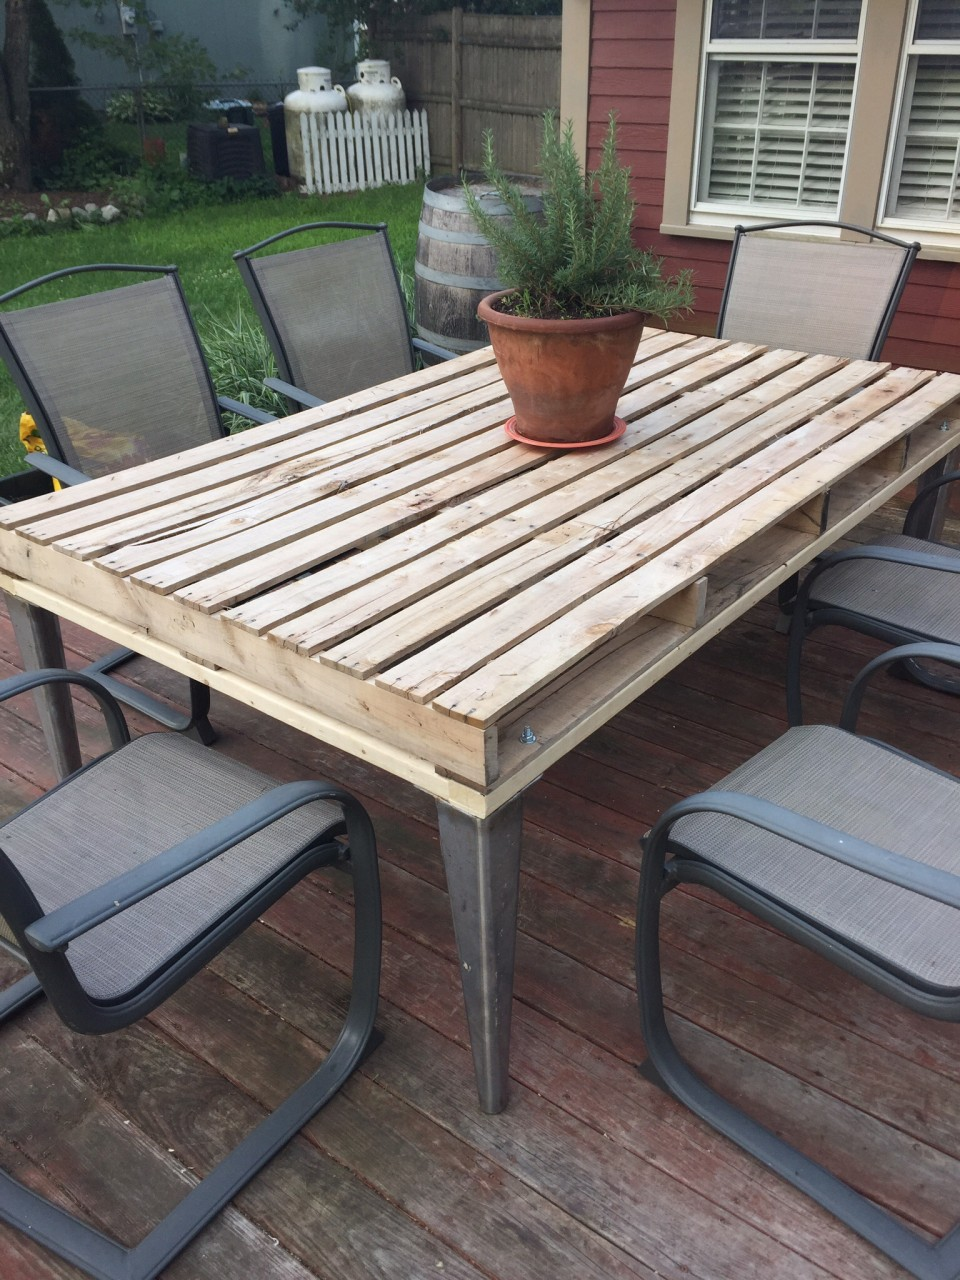 Patio coffee table out of wooden pallets pallet ideas for Outdoor deck furniture ideas